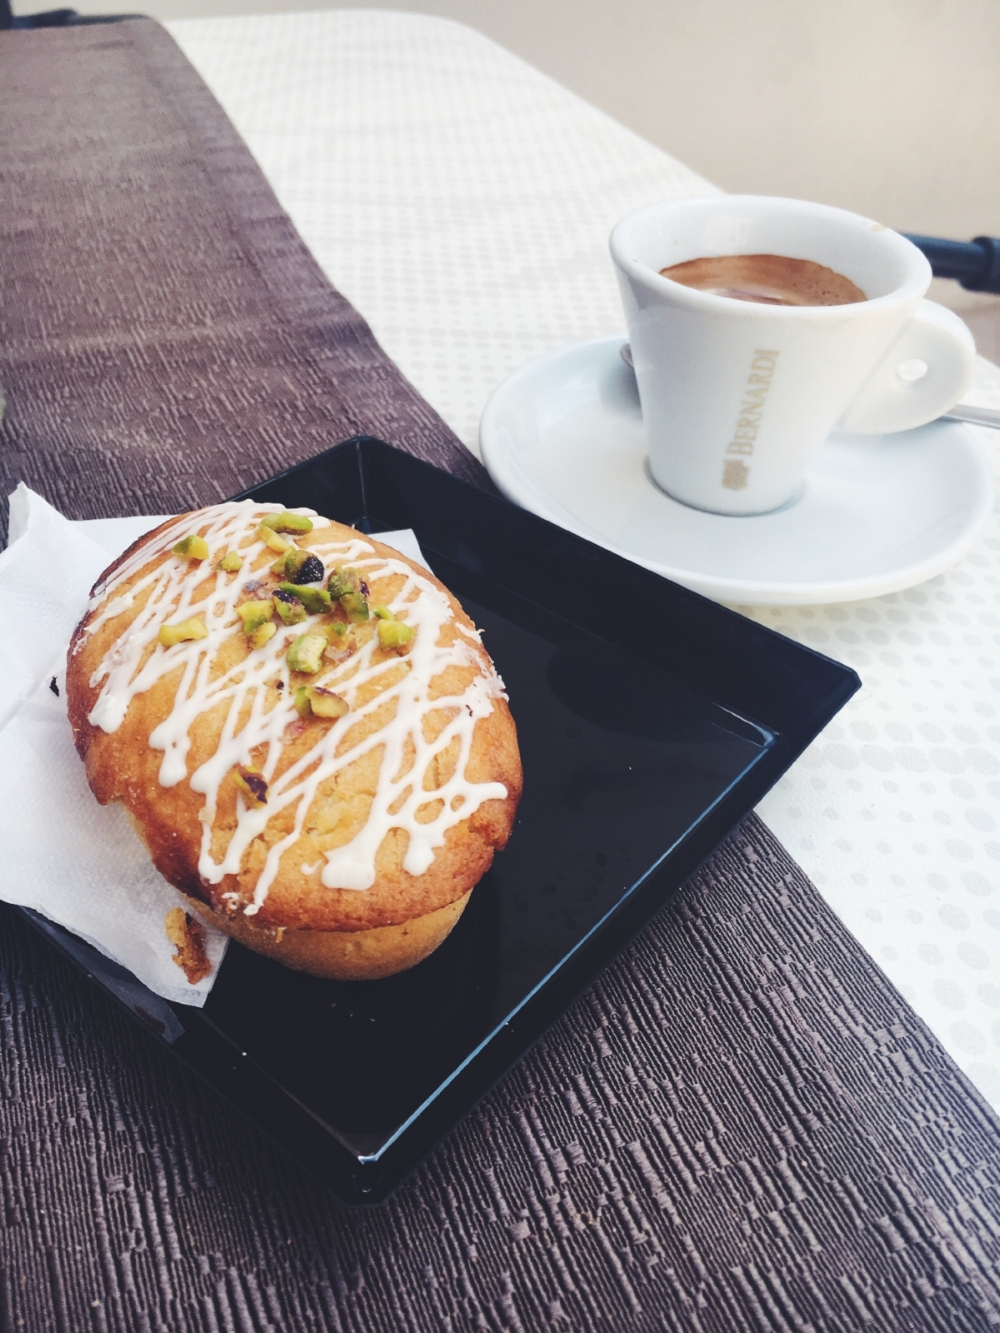 If you're headed here for breakfast time, try one of their 'pasticciotto'. These small pastries are renowned in Puglia and the ones here are particularly delicious. Learn more about Pasticciotto over   here.